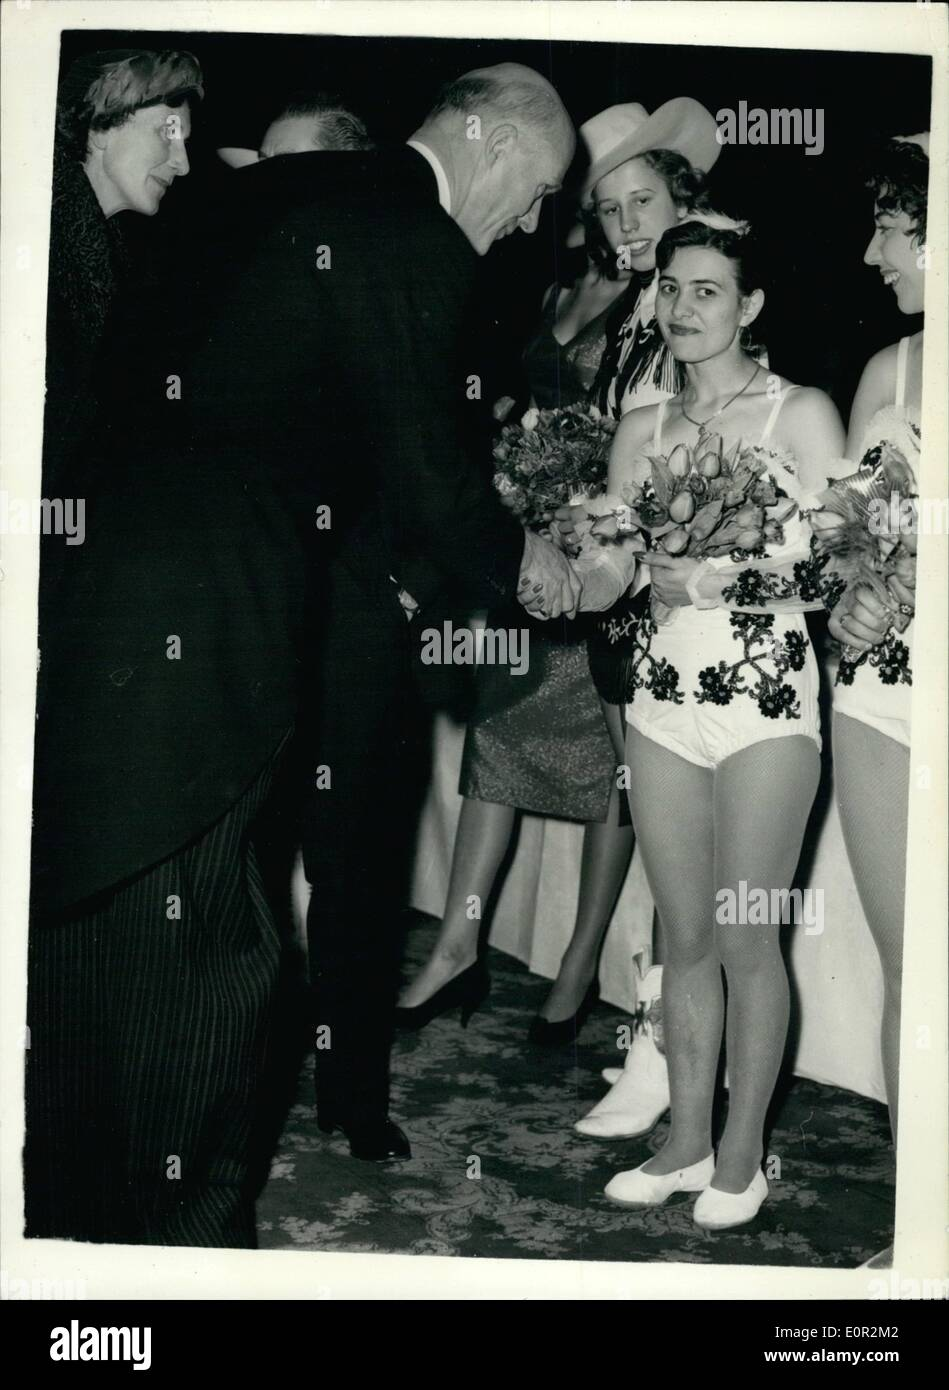 Dec. 12, 1957 - The Lord Mayor Meets Circus Artistes. The Lord Mayor of London, Sir Denis. Truscott, chatting to a small trapese artist - at Olympia where the Bartra Hills Circus opens today - Stock Image